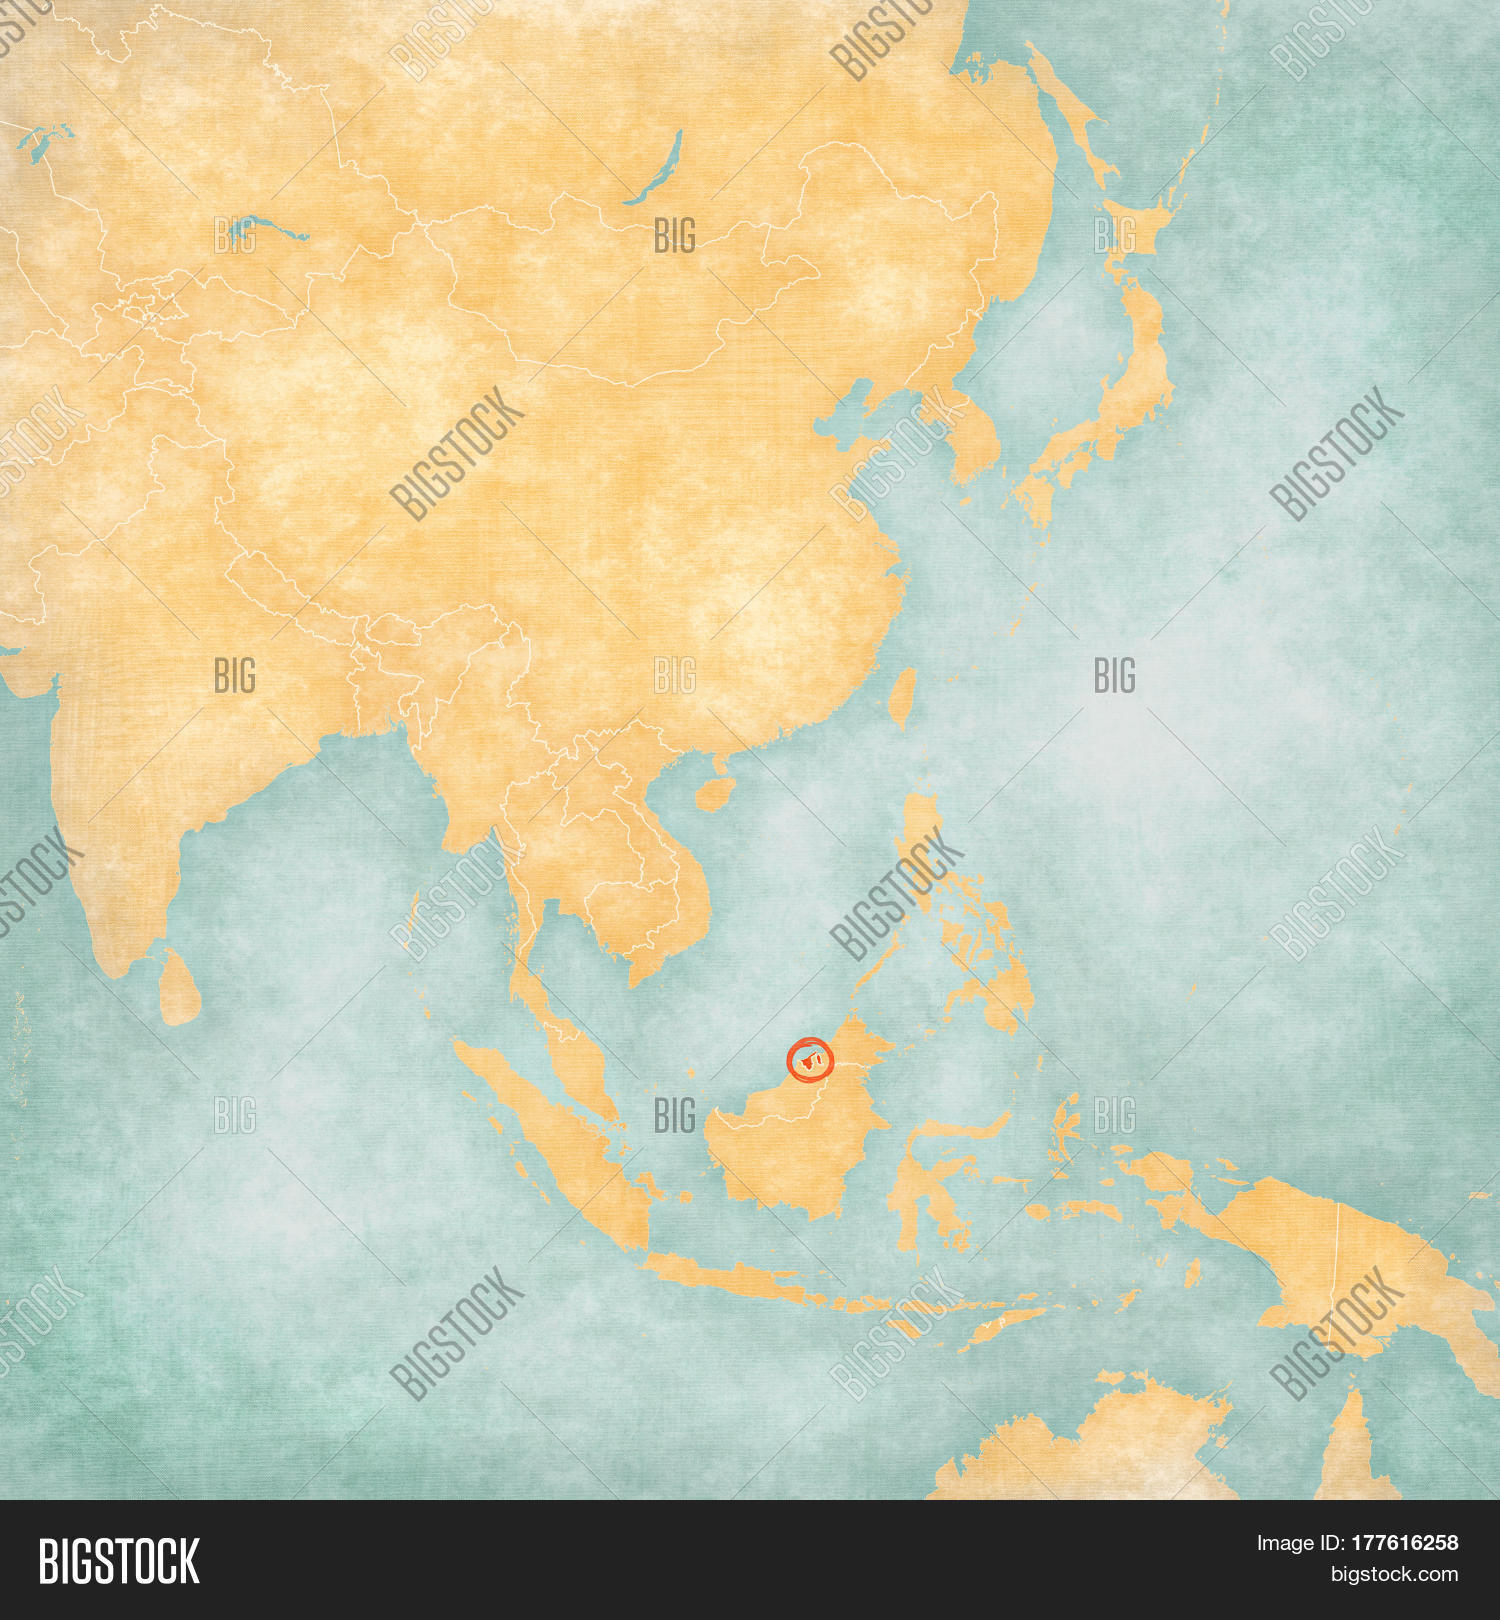 Map Of Asia Brunei.Map East Asia Brunei Image Photo Free Trial Bigstock